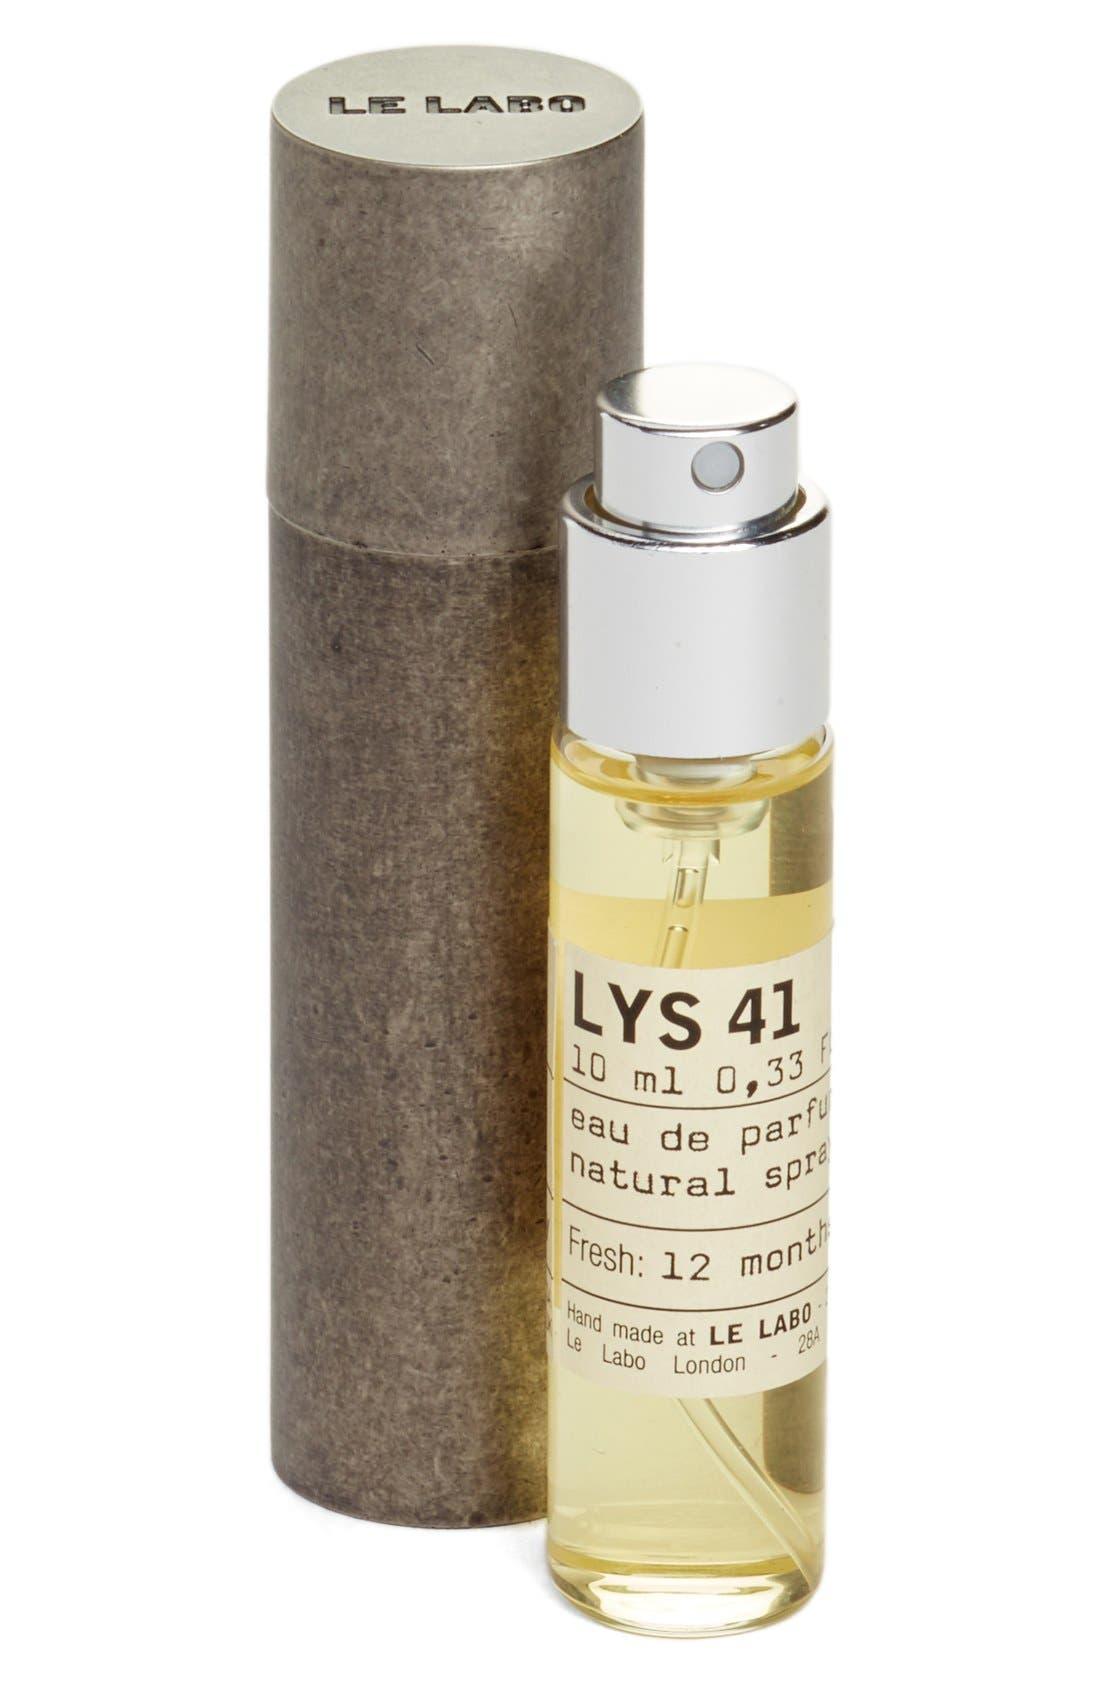 Le Labo 'Lys 41' Travel Tube